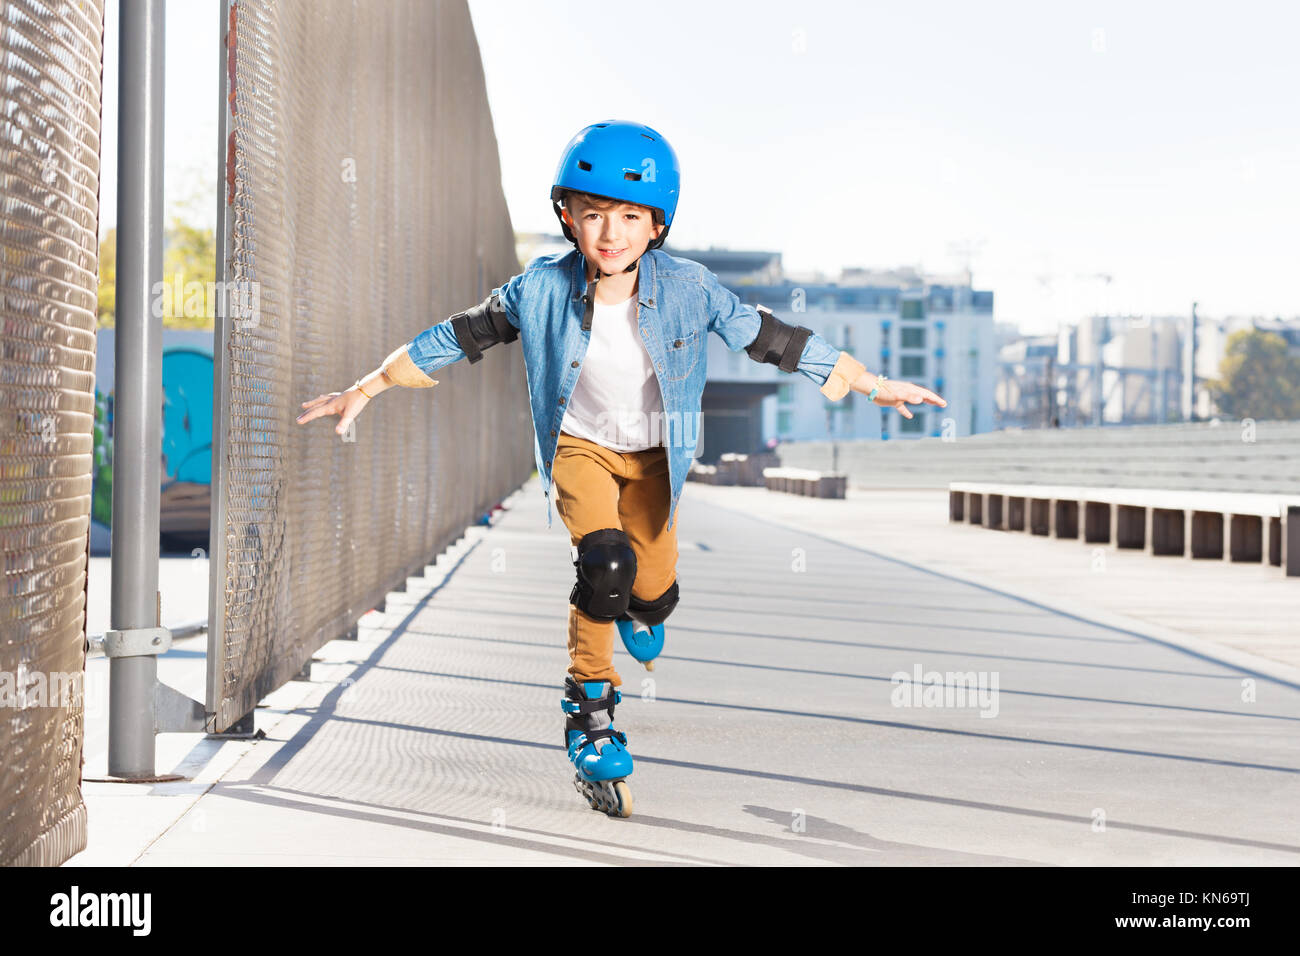 Portrait of preteen boy in helmet practicing rollerskating with his hands like wings at outdoor rollerdrome - Stock Image